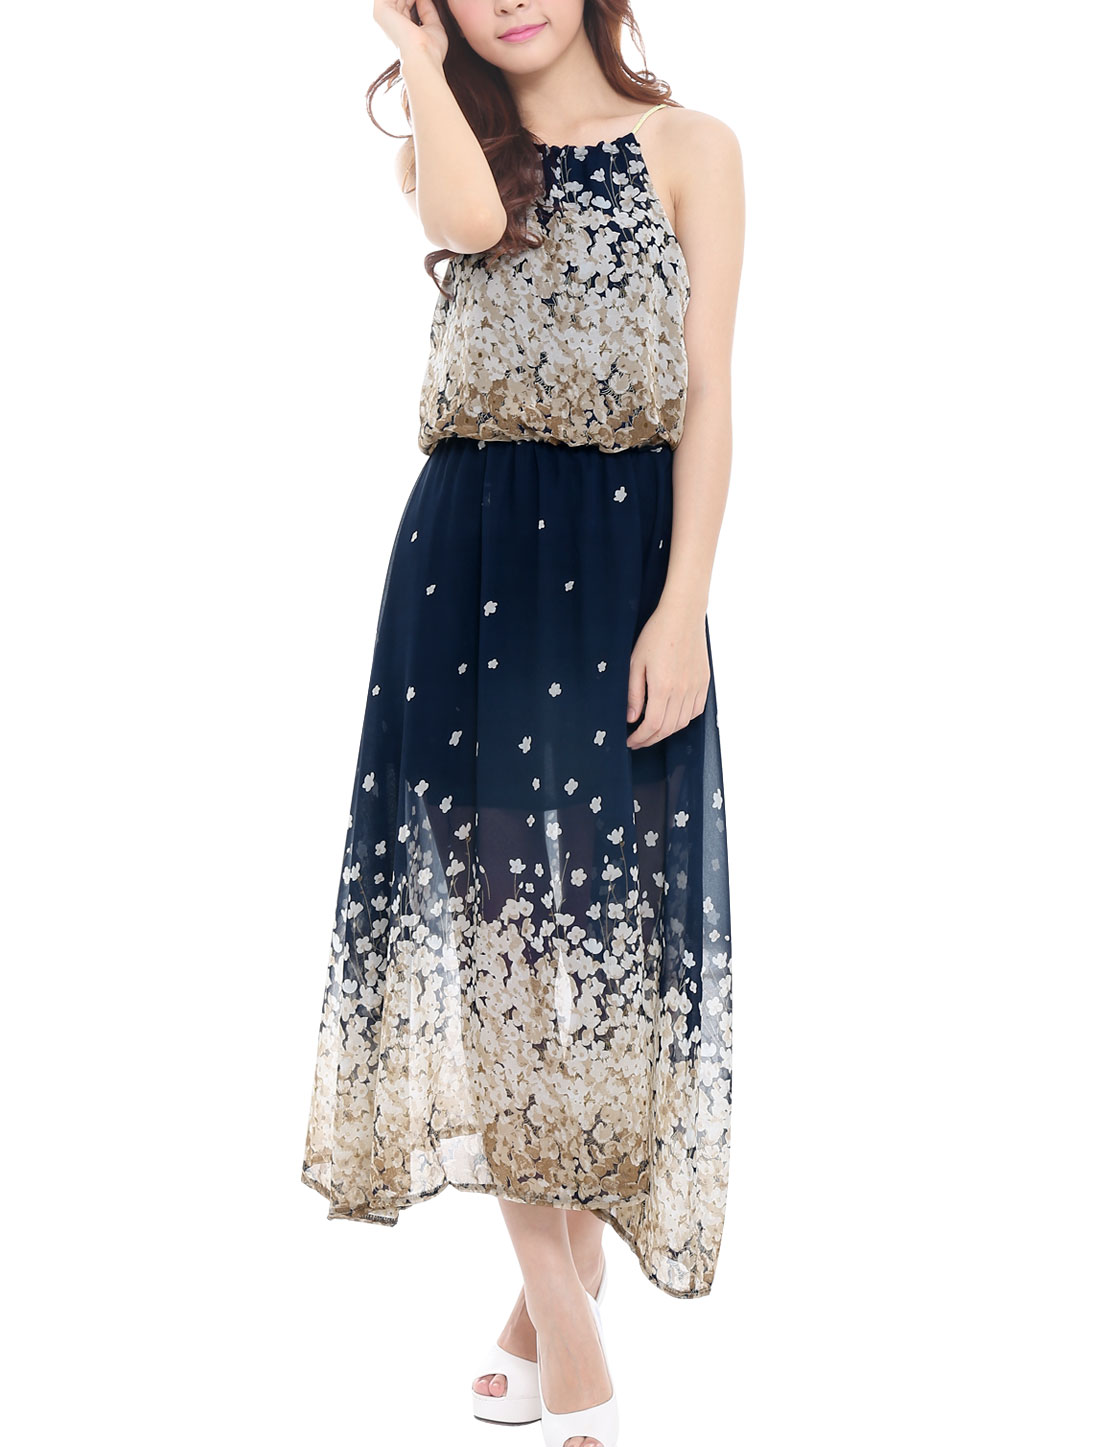 Lady Self-Tie Halter Neck Floral Prints Dress Beige Navy Blue XS